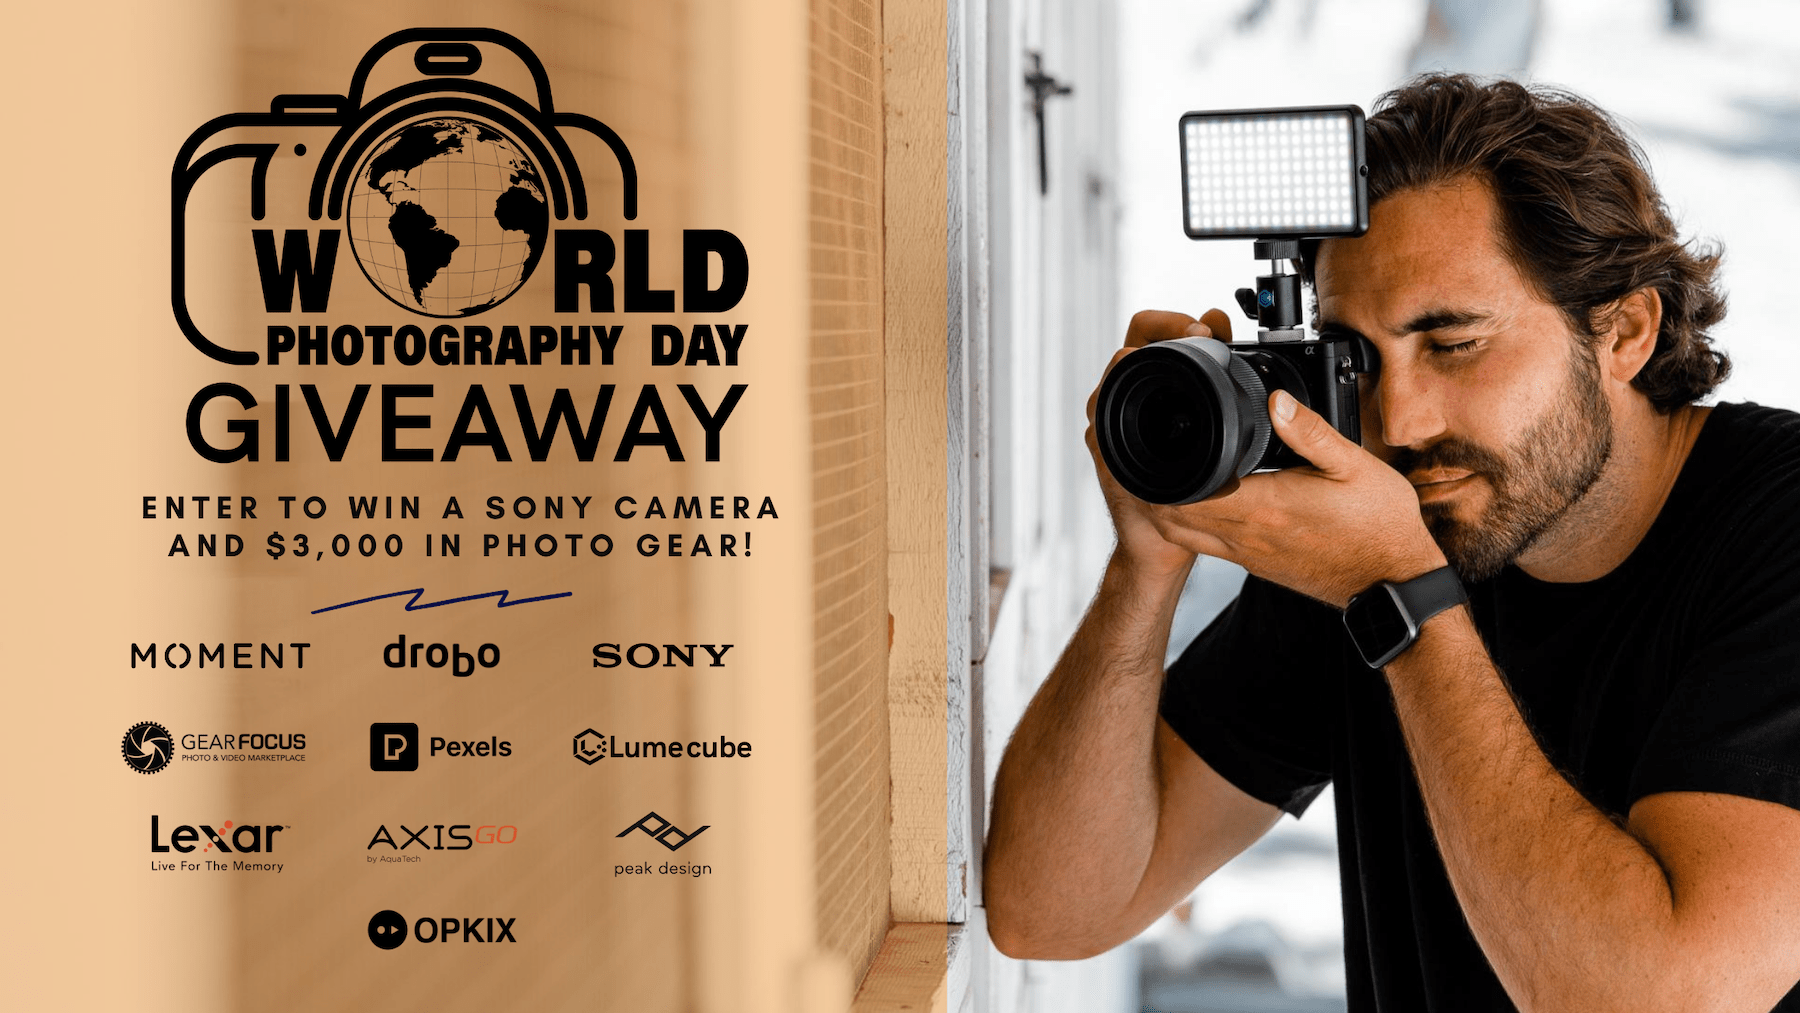 Photographer holding a camera to his face as part of a giveaway collaboration between OPKIX, Lume Cube, Sony & others